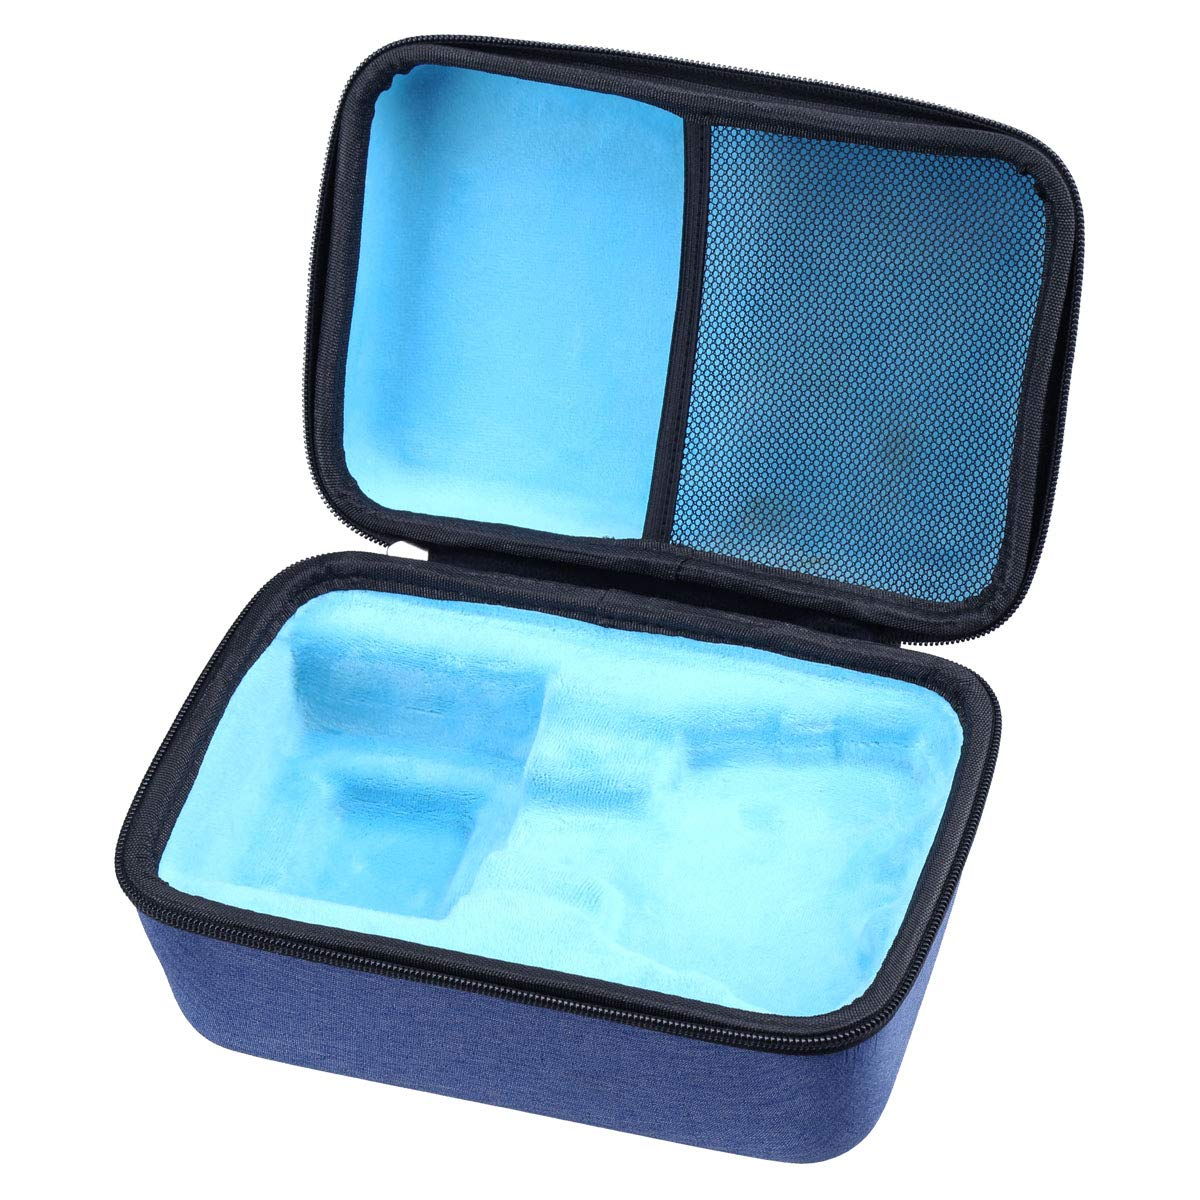 Aproca Hard Carry Travel Case Compatible with Mibro Really Rad Robots Interactive Remote Control Robot